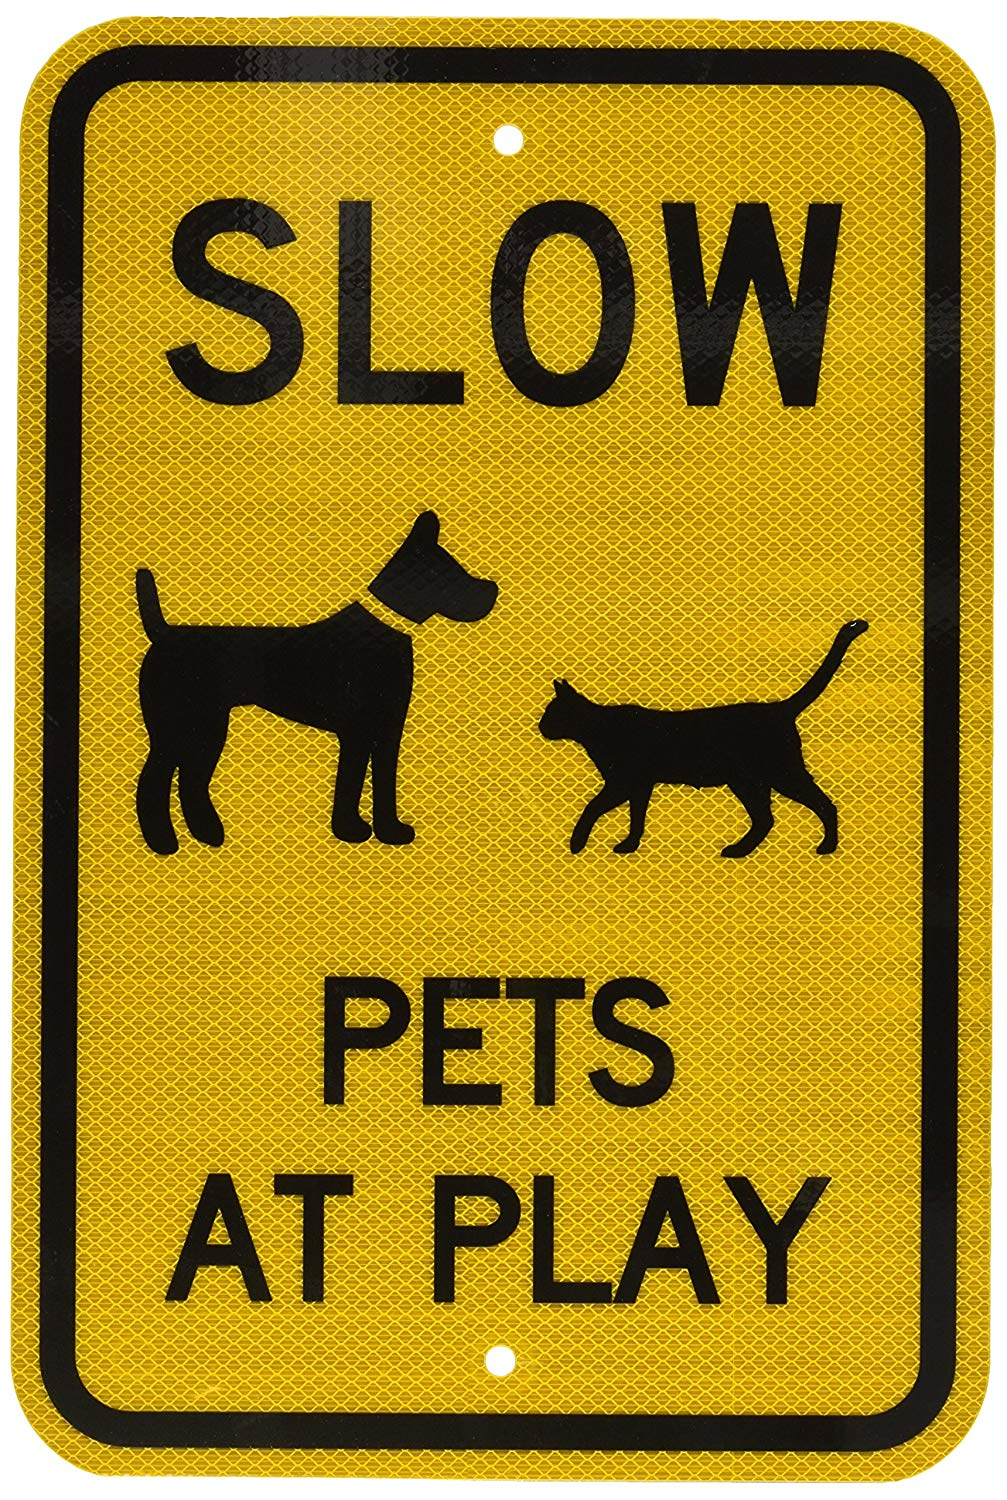 "SmartSign 3M High Intensity Grade Reflective Sign, Legend ""Slow - Pets at Play"" with Graphic, 18"" high x 12"" wide, Black on Yellow"